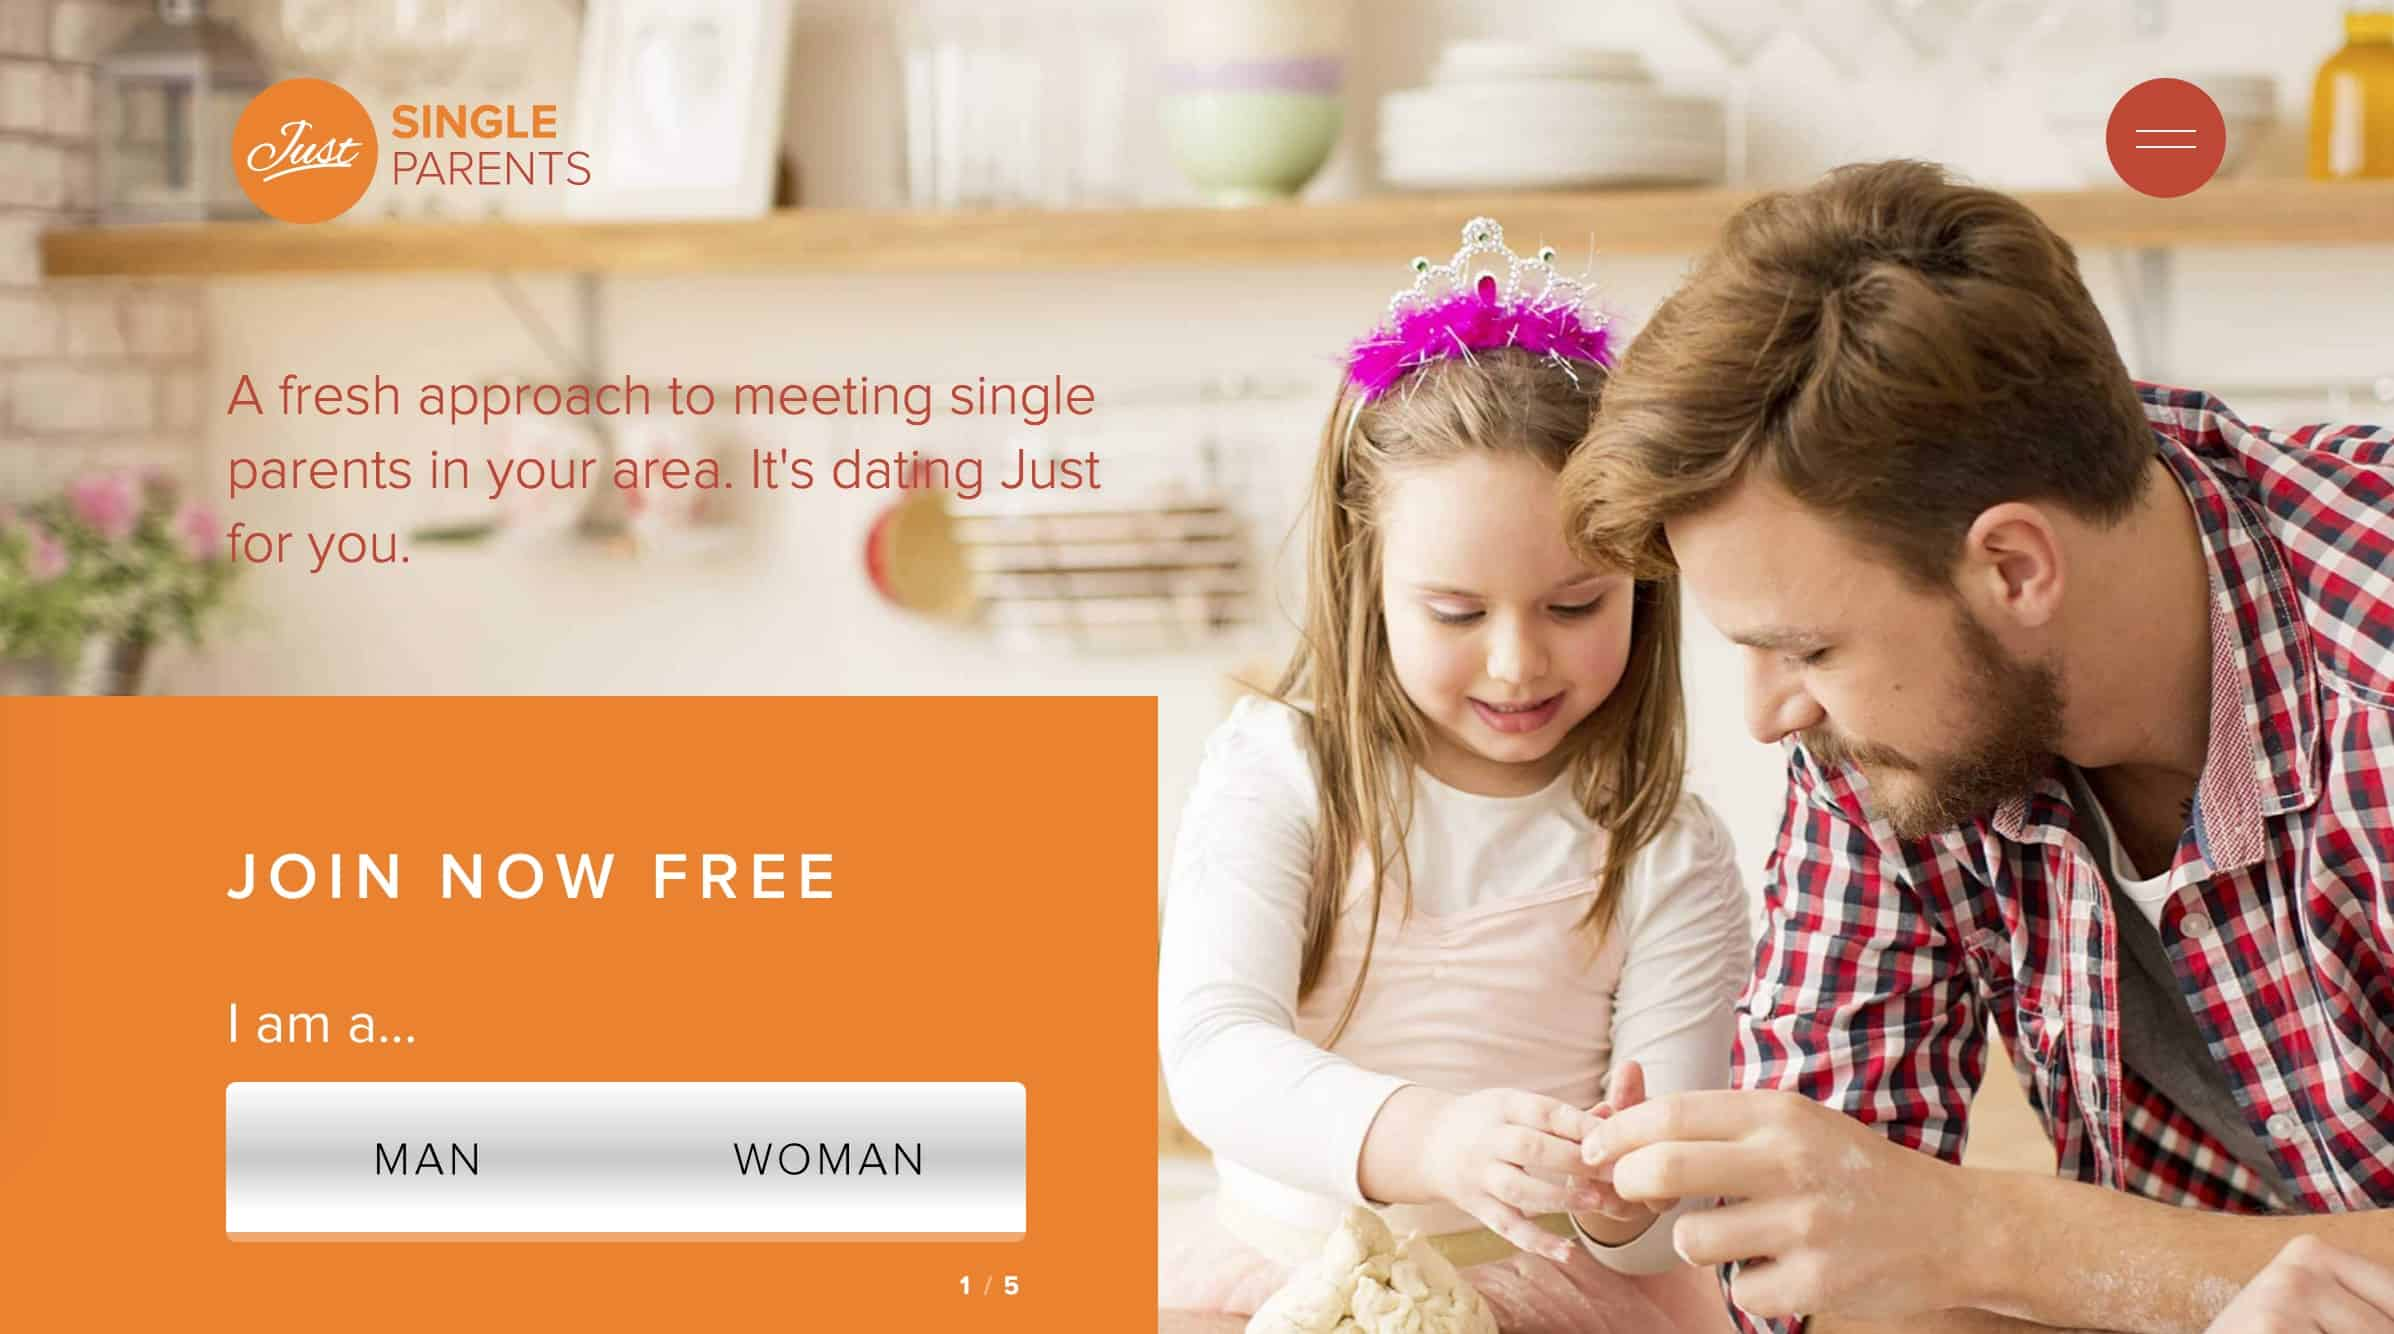 valders single parent dating site Quick, easy and free to join we love dates is a proven single parent dating site for single mums and dads starting new relationships across south africa.